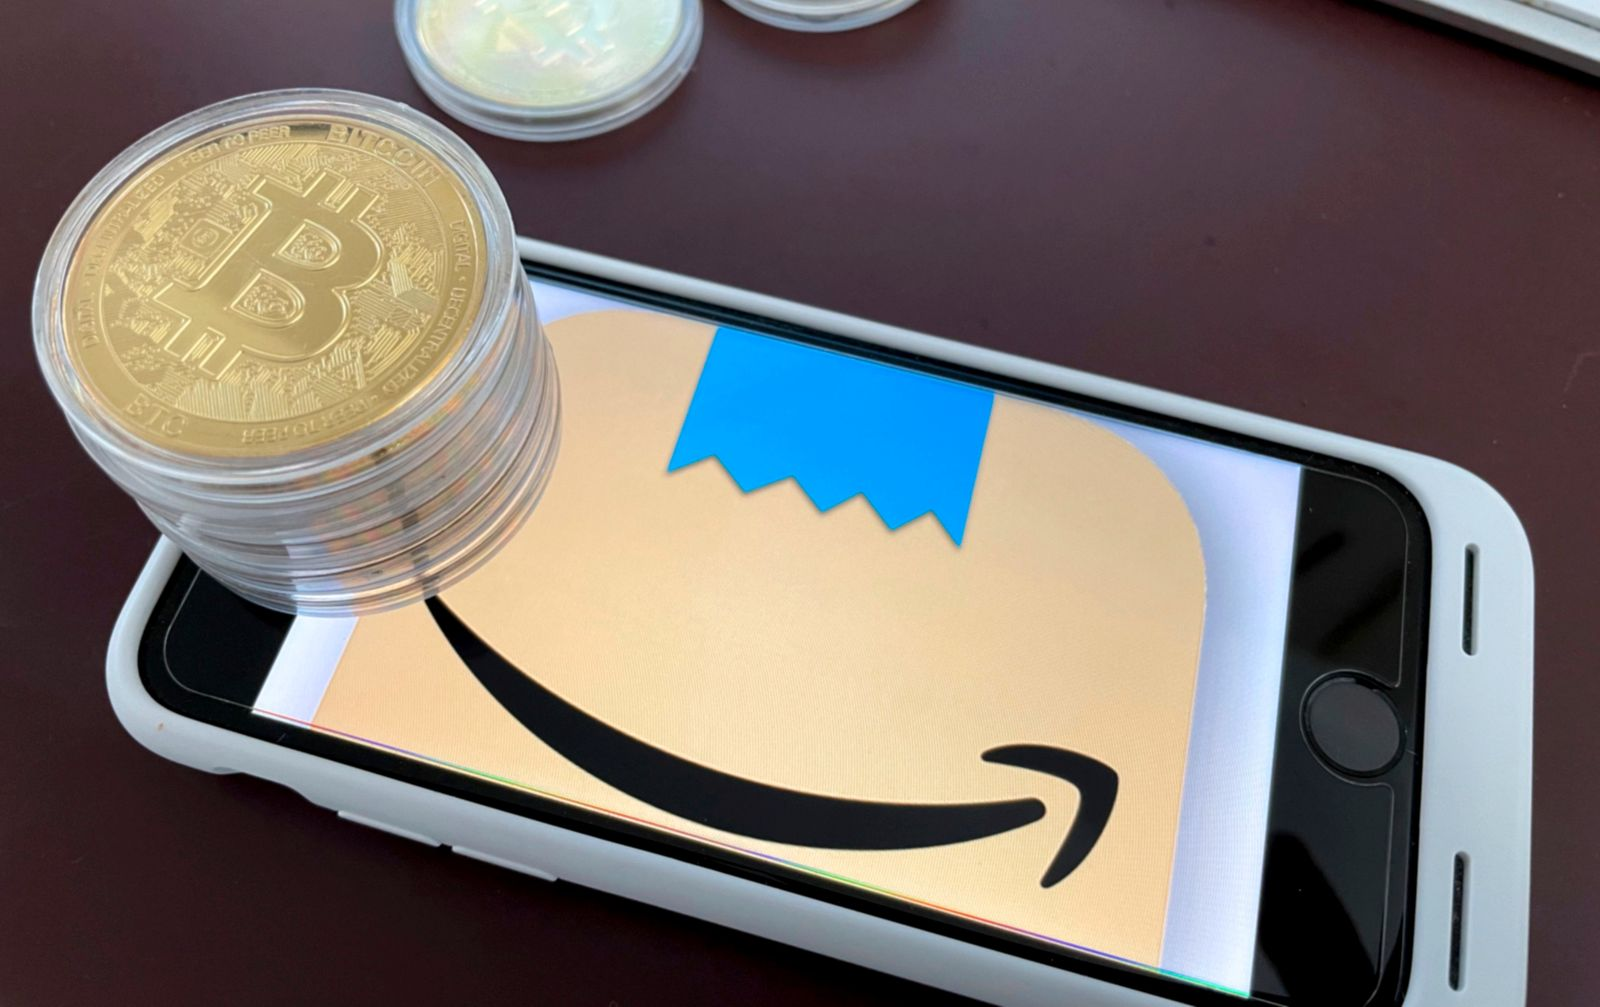 Amazon set to accept Bitcoin and develop Crypto strategy